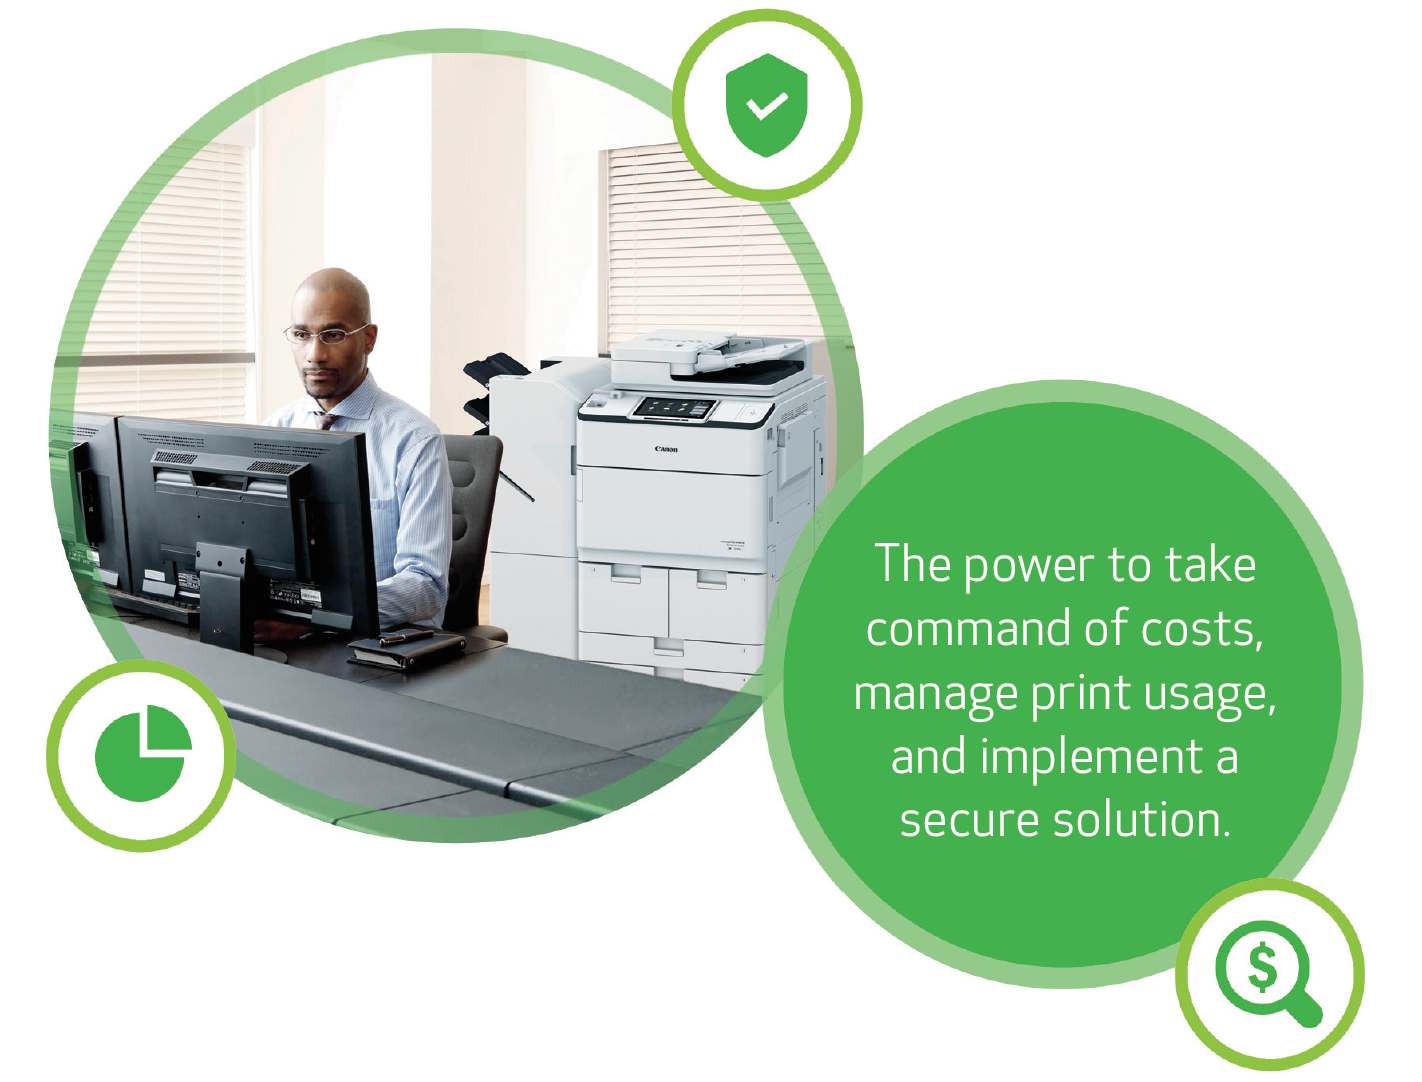 Control. The power to take command of costs, manage print usage and implement a secure solution.